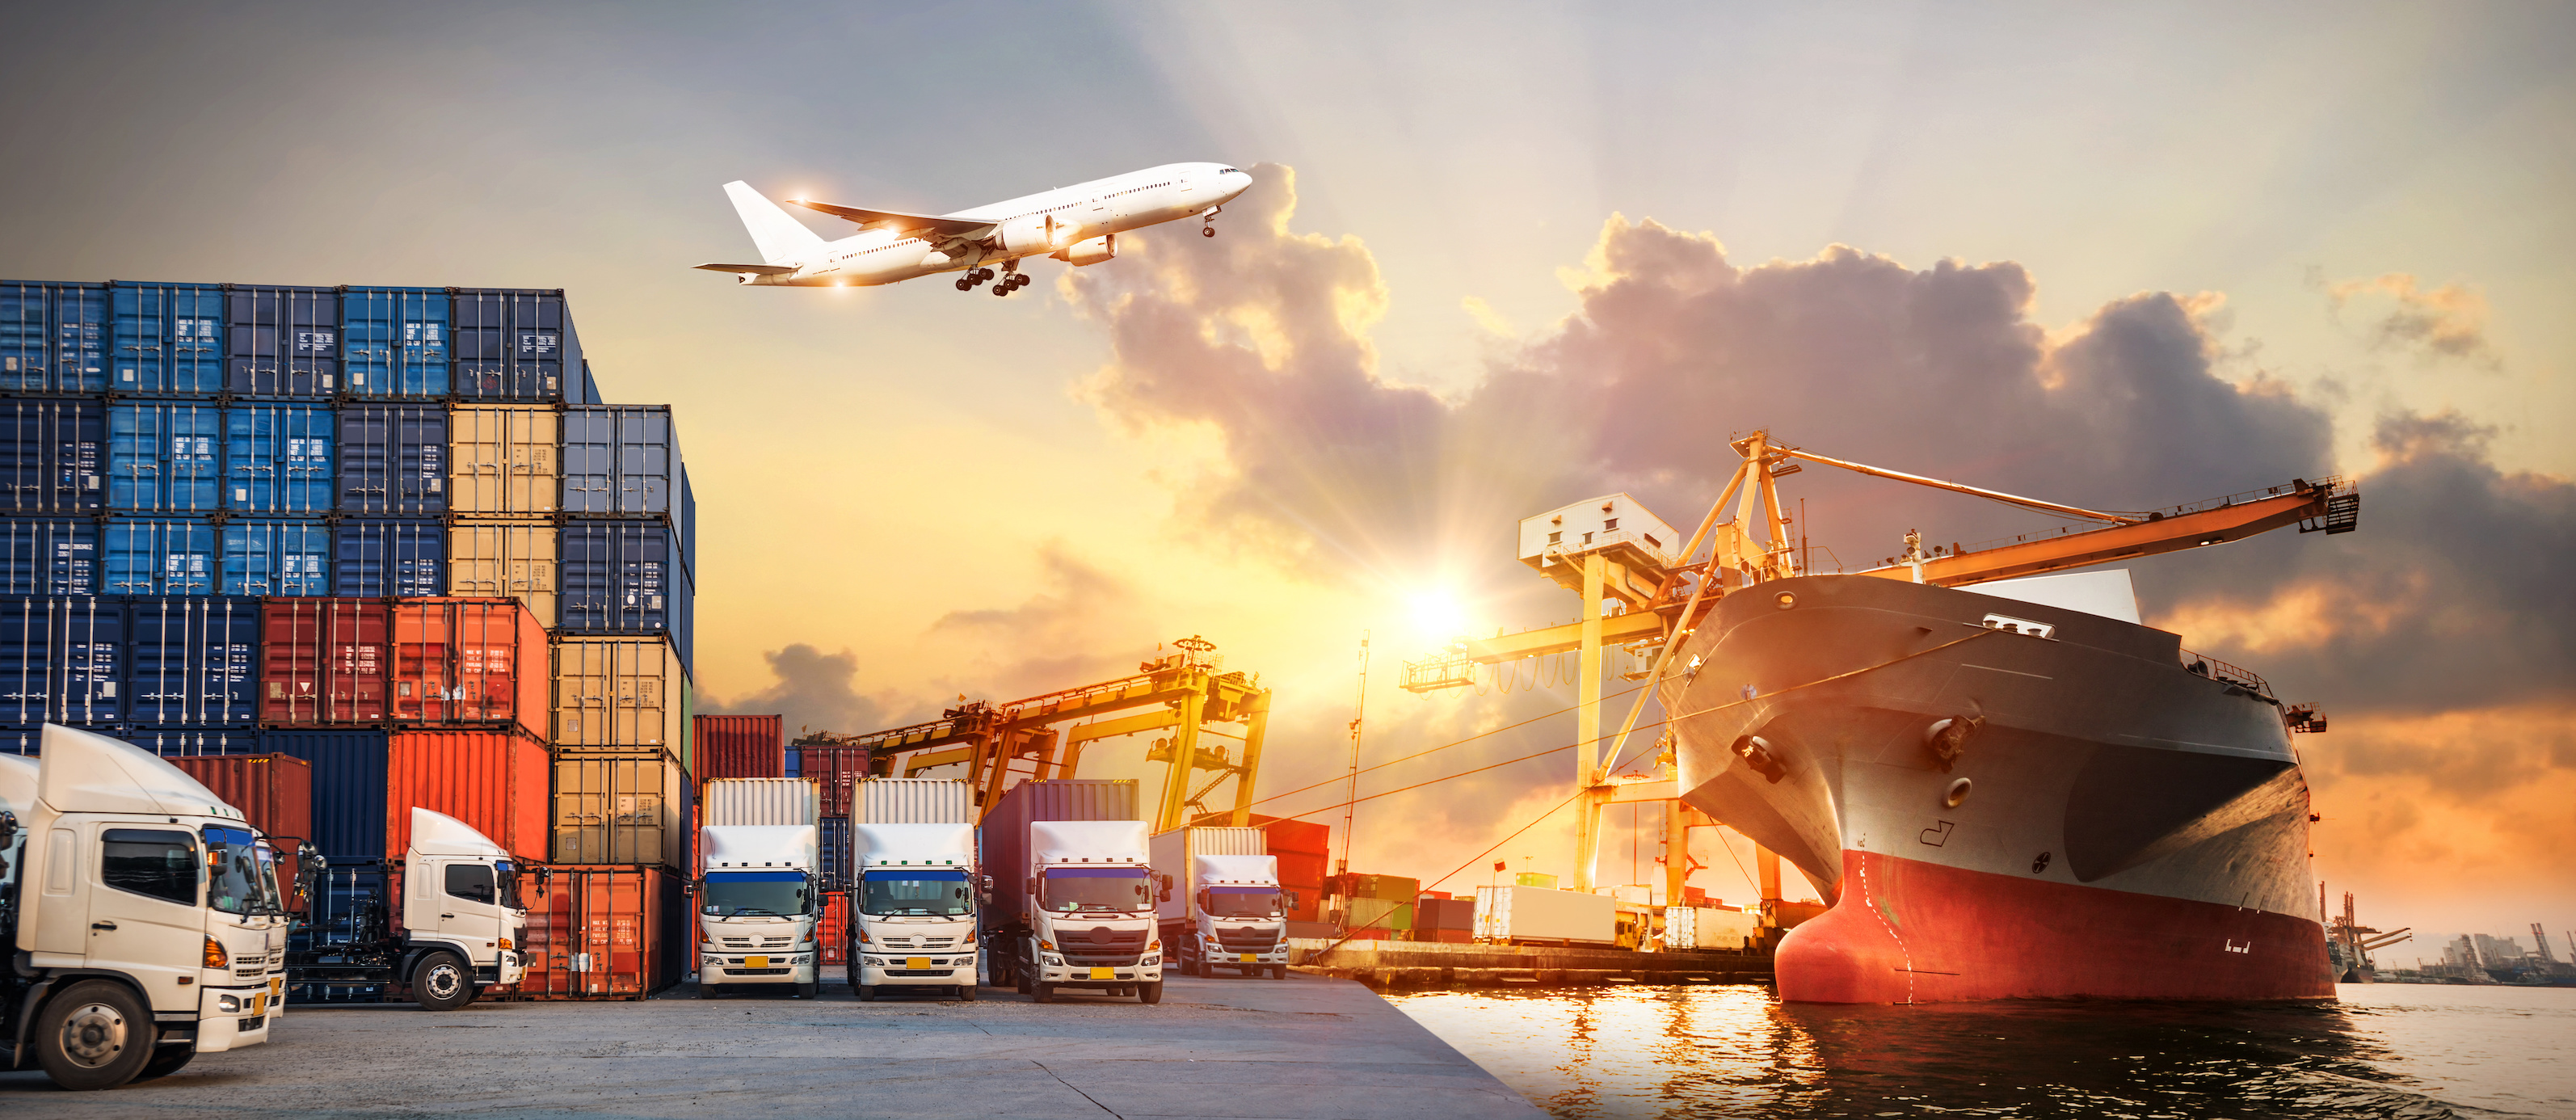 Logistics Trends & The State of Freight: A Freighter's World - Moving Cargo  in 2018